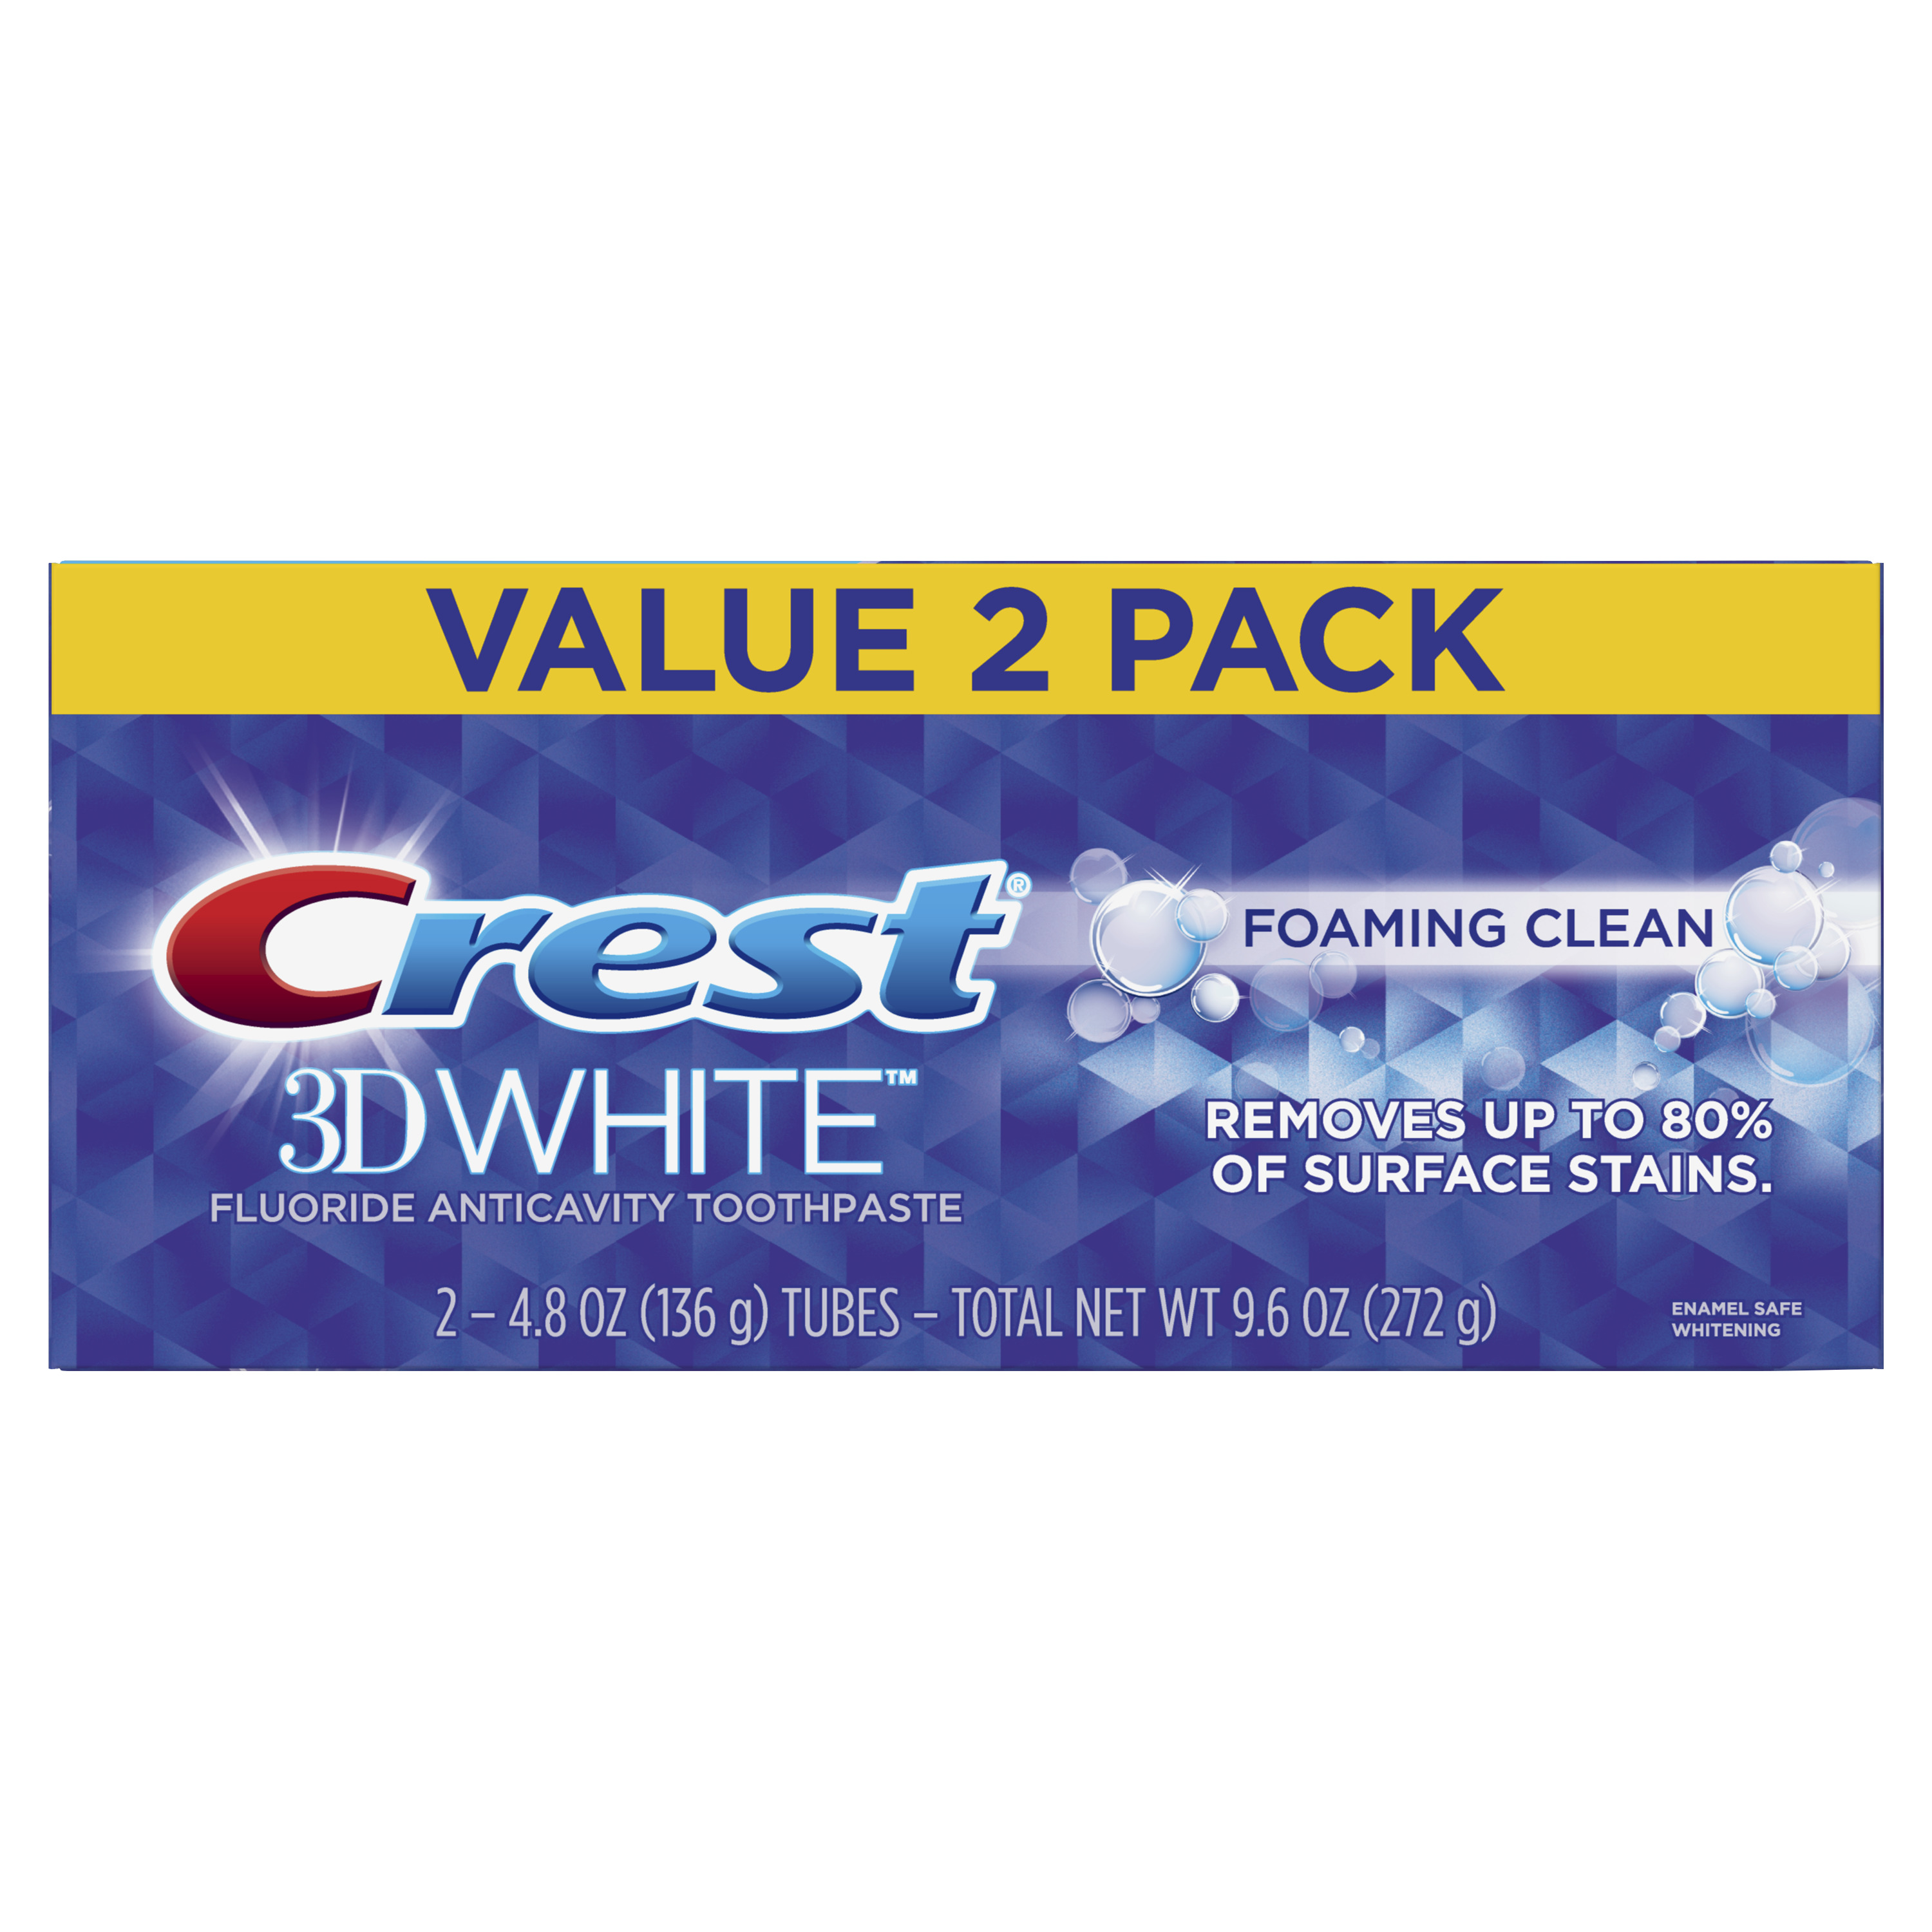 Crest 3D White Foaming Clean Whitening Toothpaste, 4.8 oz, Pack of 2